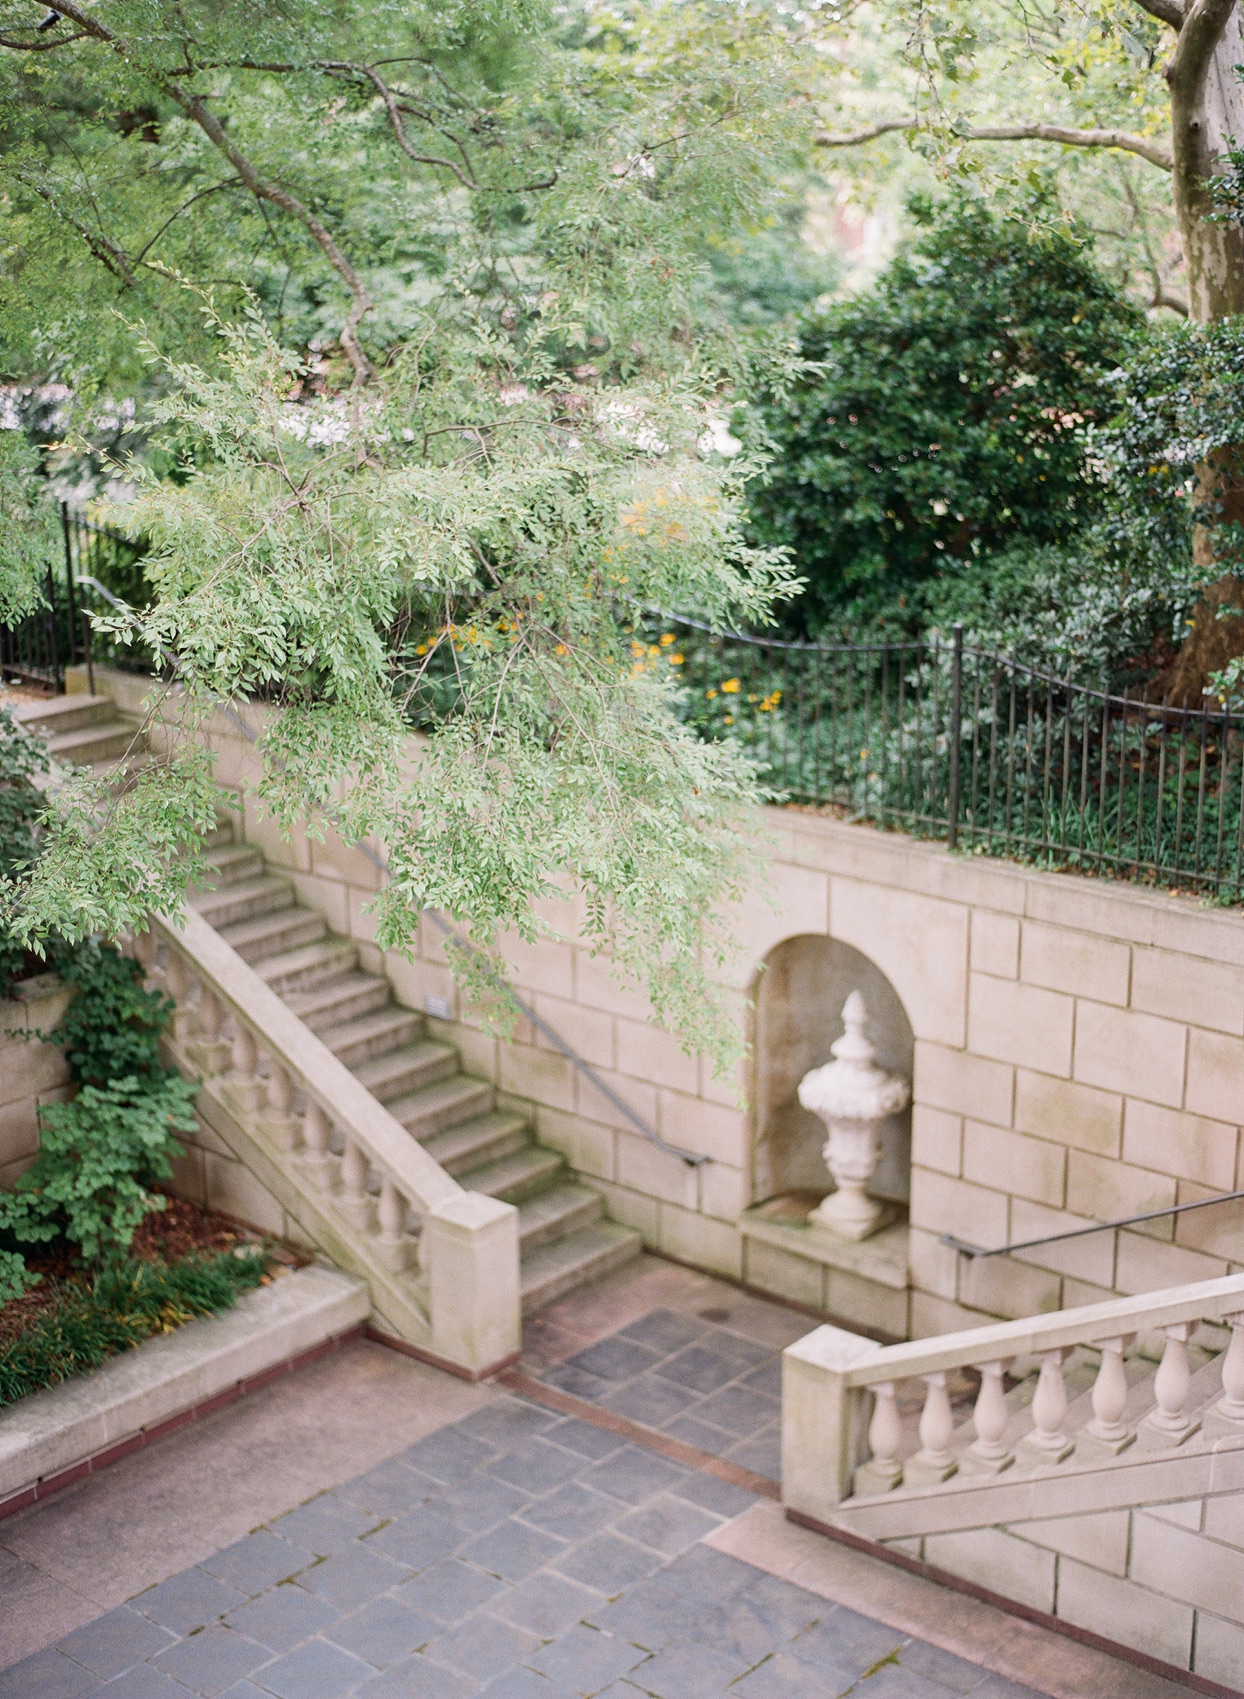 wedding venue staircases on either side of courtyard garden